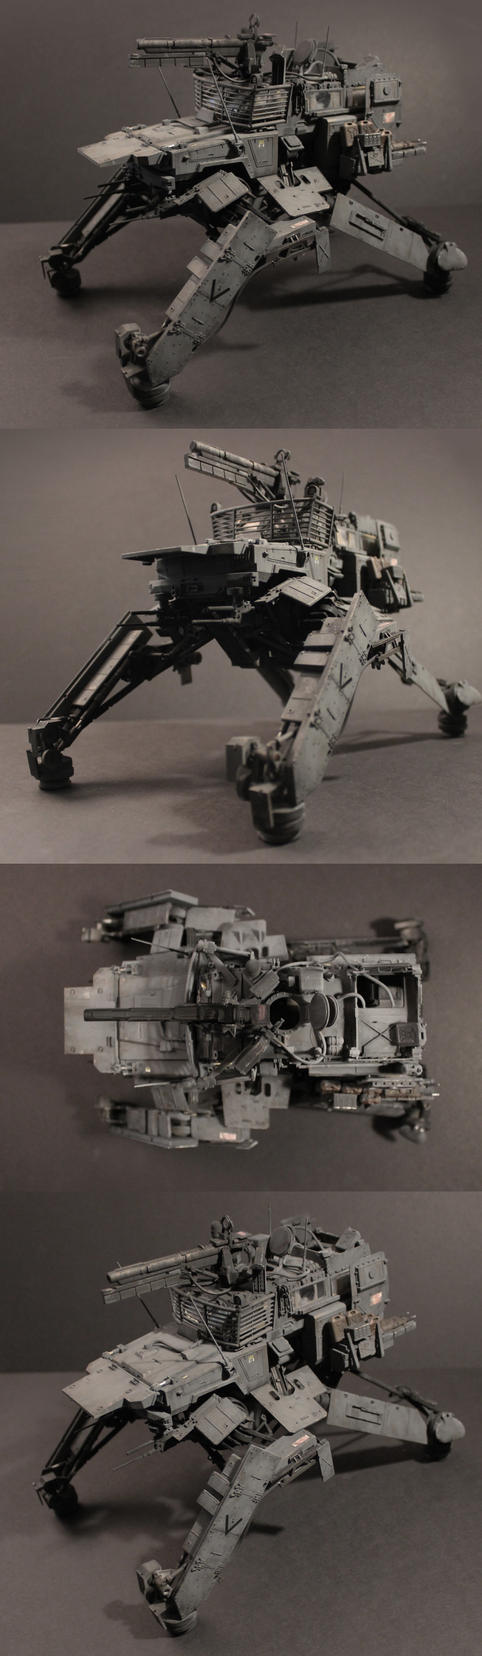 kitbash mech by ProgV